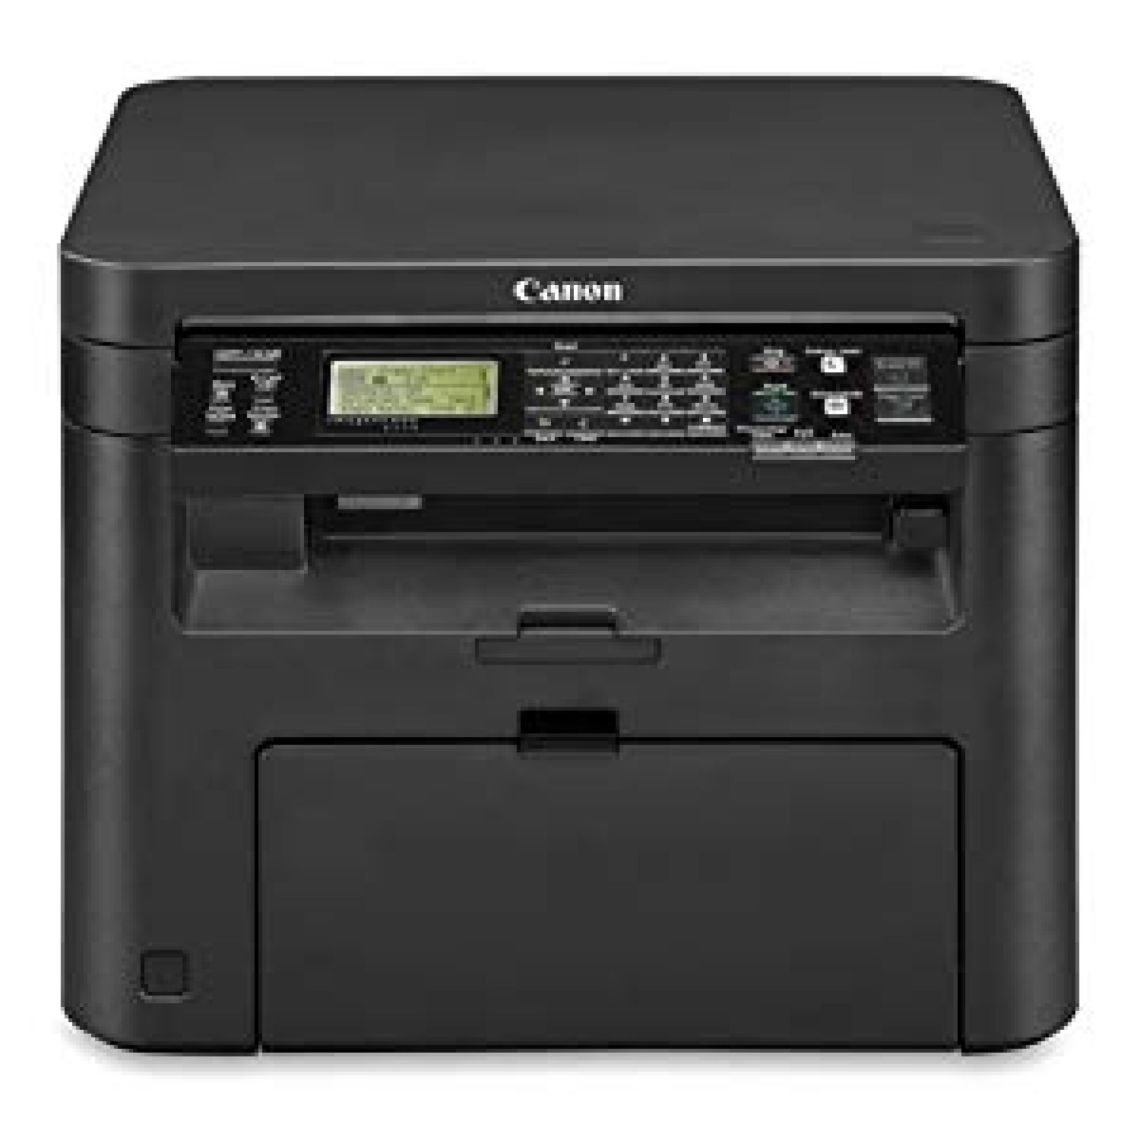 Amazon.com: Canon imageCLASS D570 Monochrome Laser Printer with Scanner and Copier: Electronics